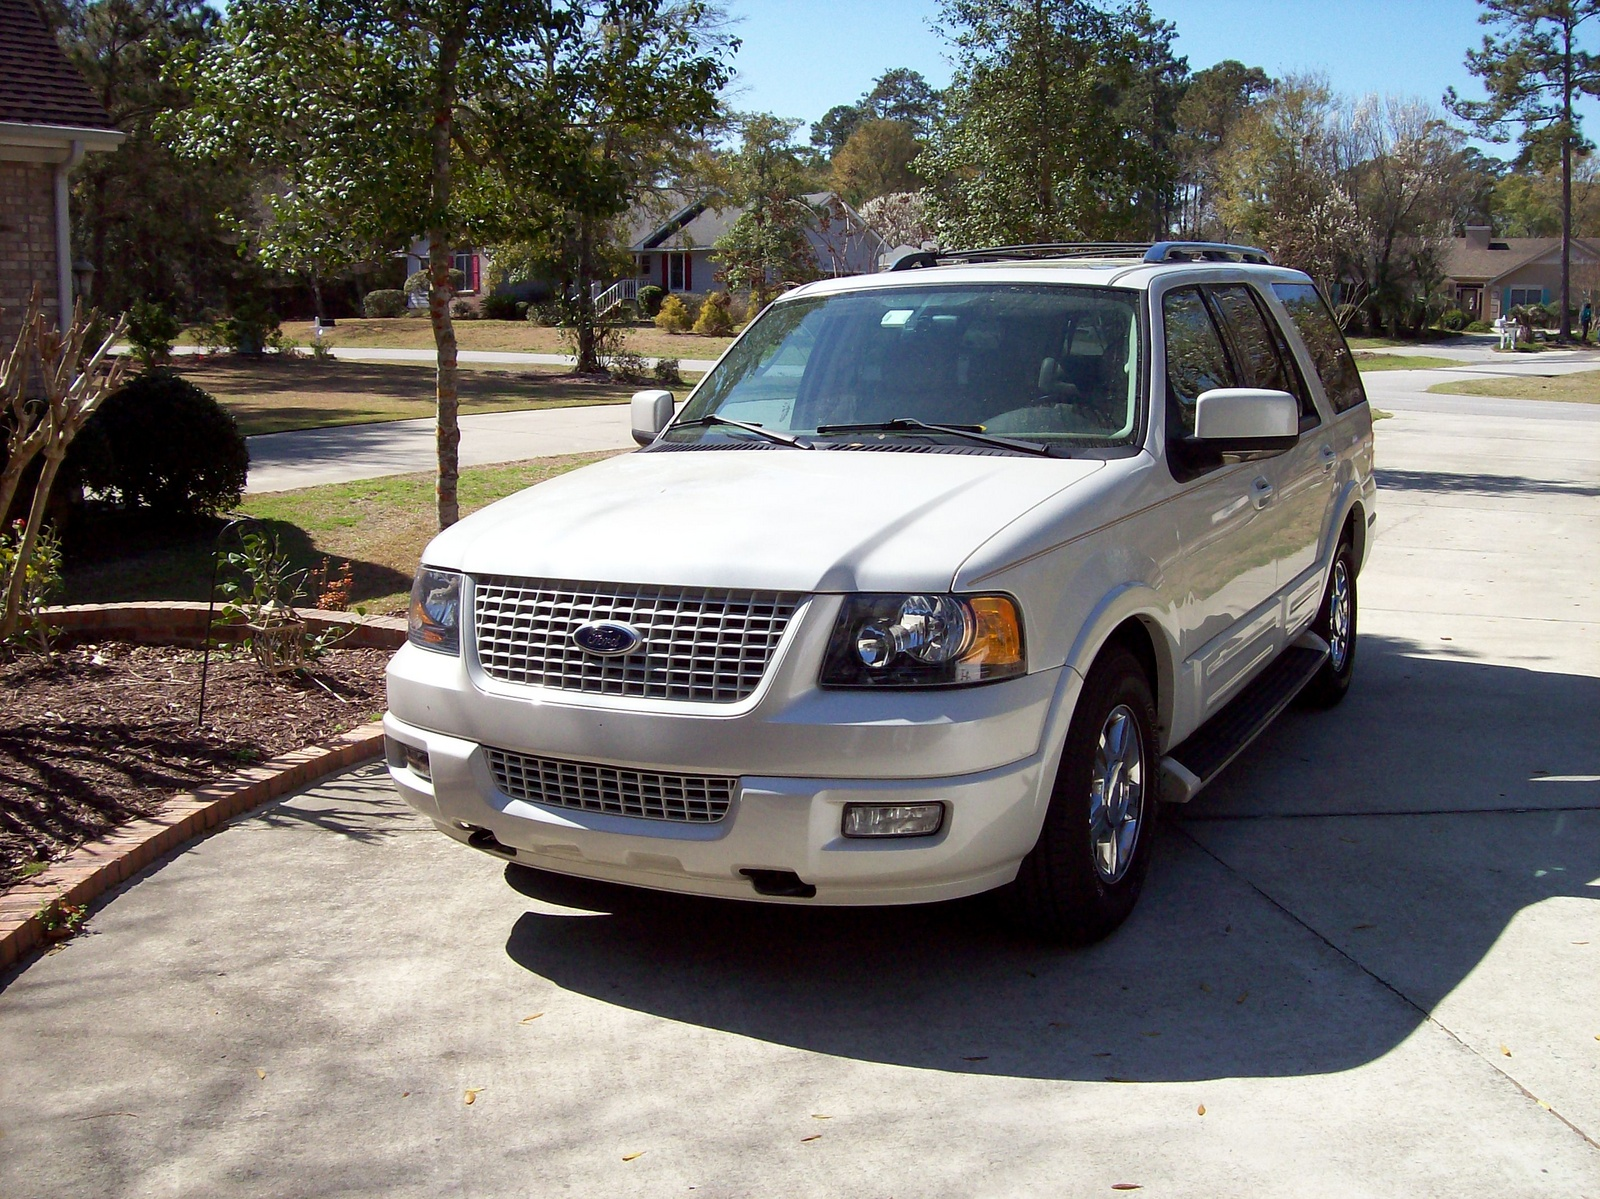 2005 Ford Expedition Limited In Houston Tx: 2005 Ford Expedition